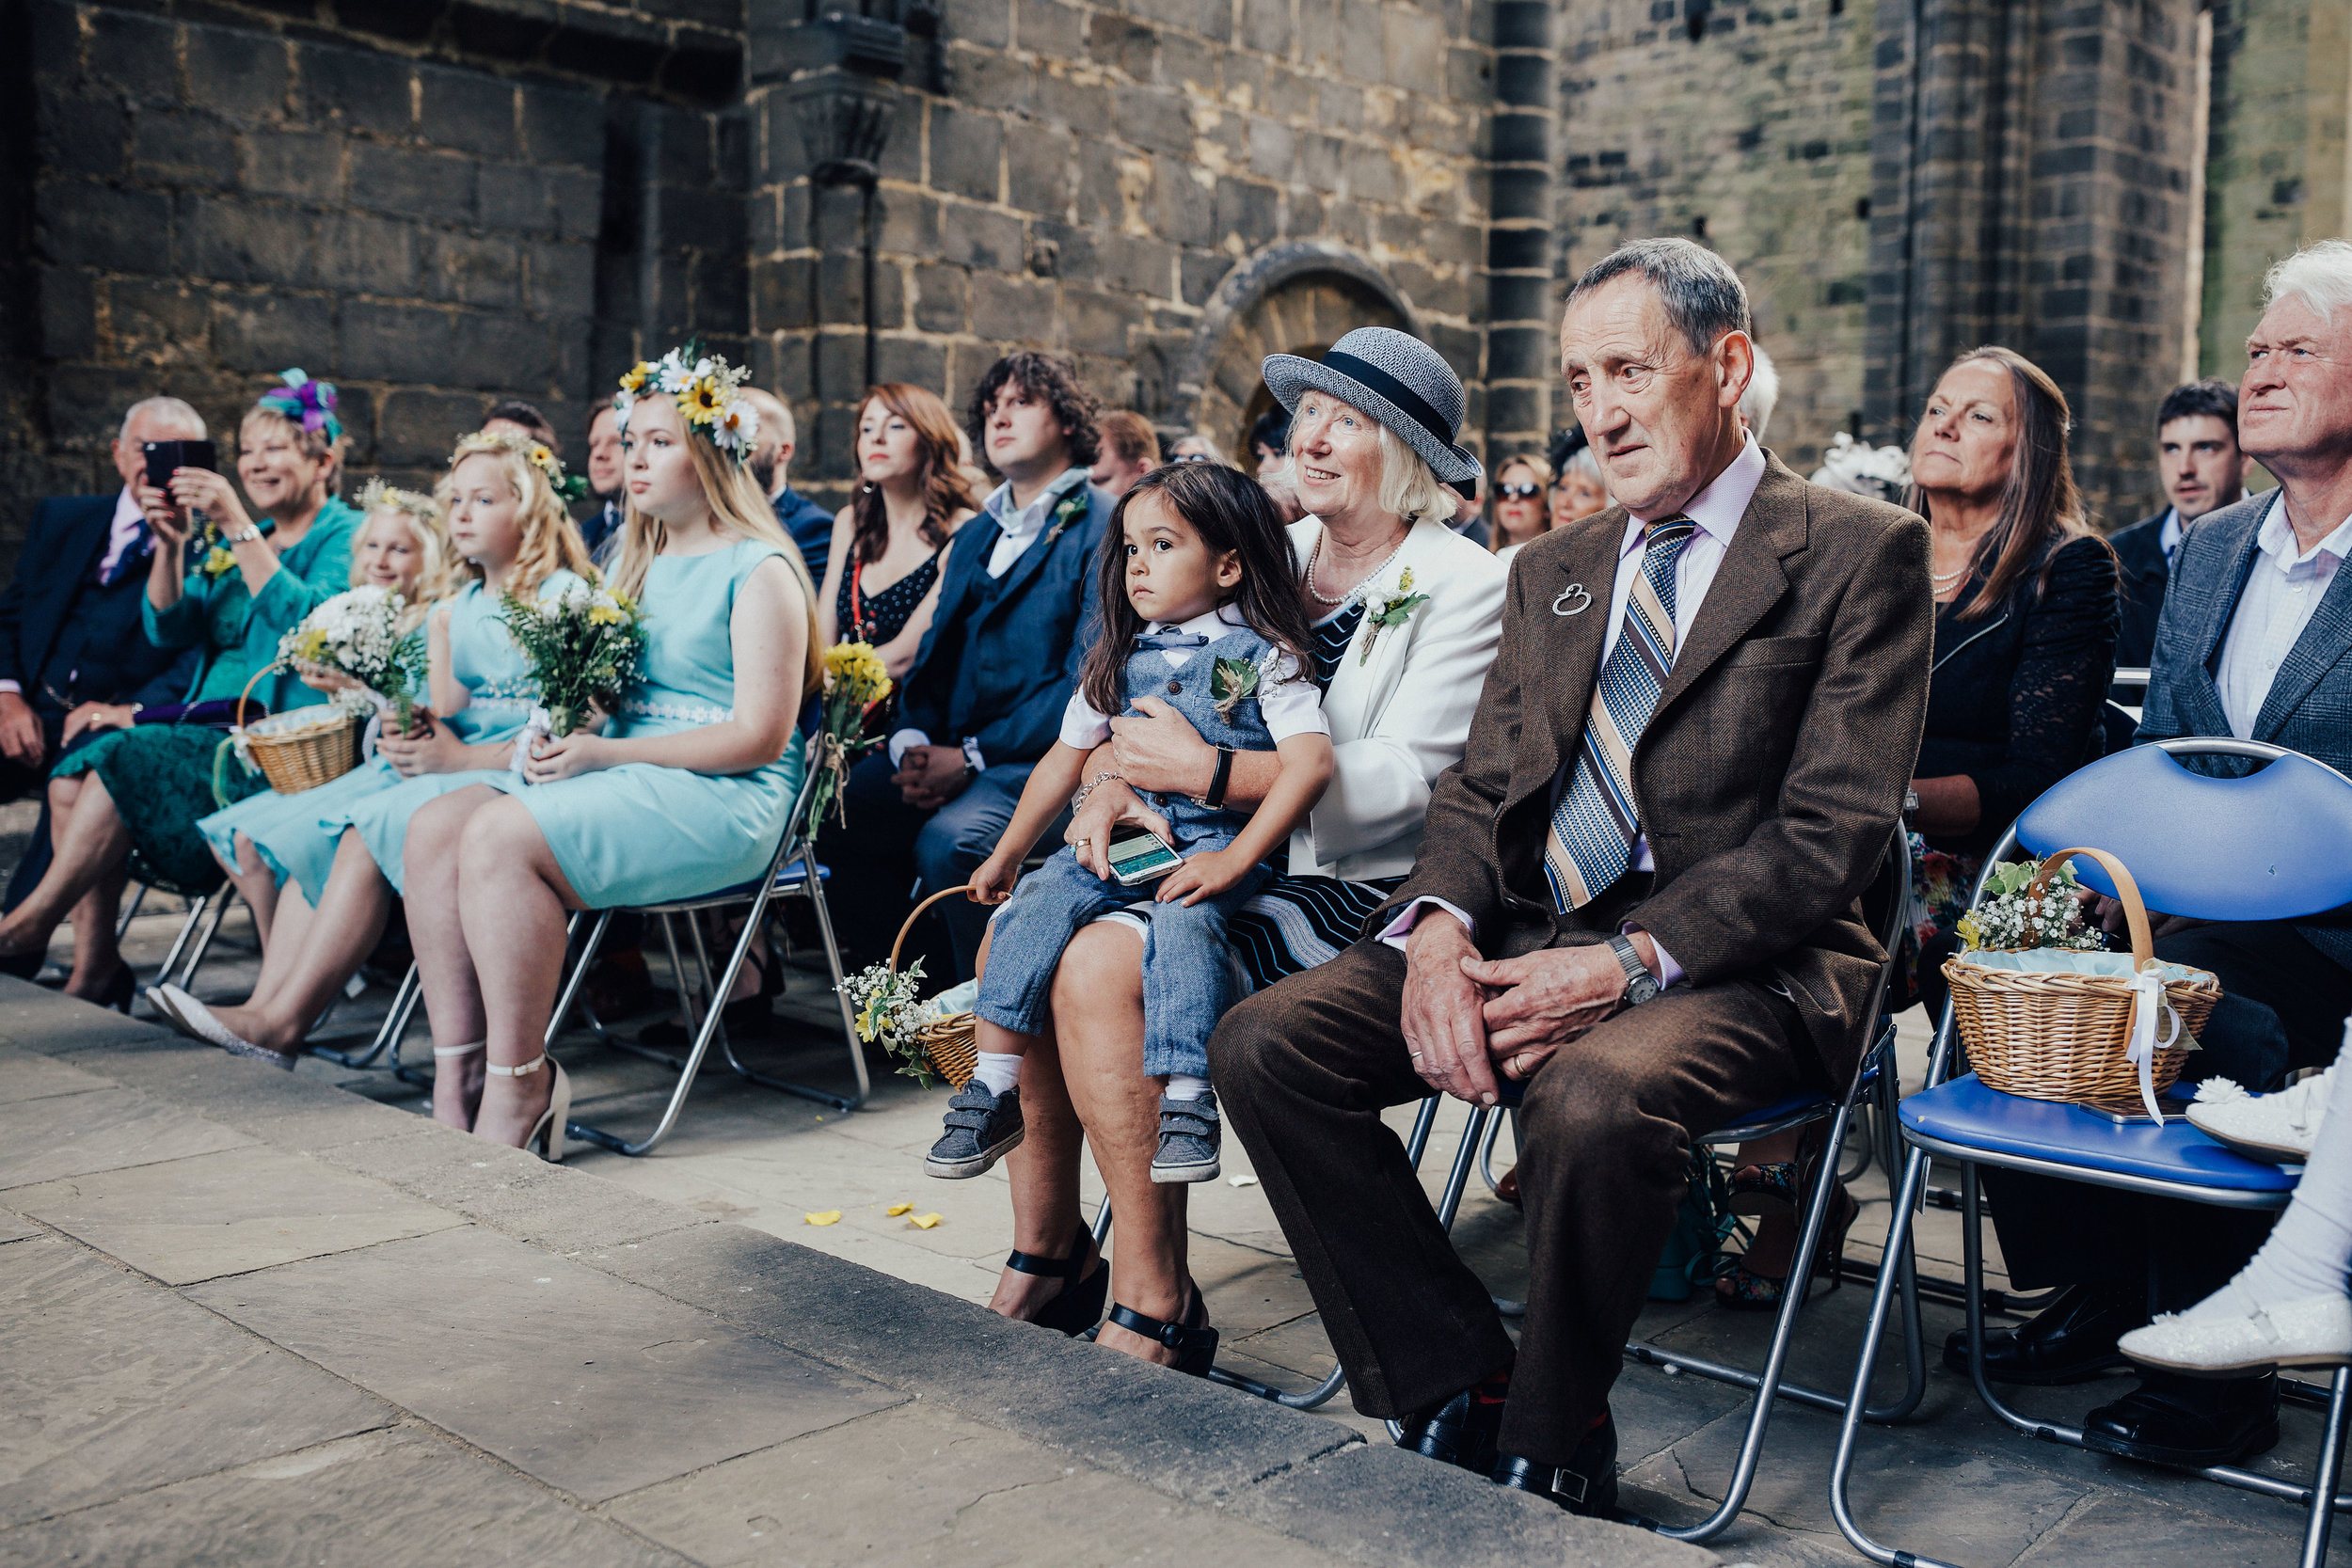 ALTERNATIVE_WEDDING_PHOTOGRAPHY_LEEDS_UK_PJ_PHILLIPS_PHOTOGRAPHY_62.jpg